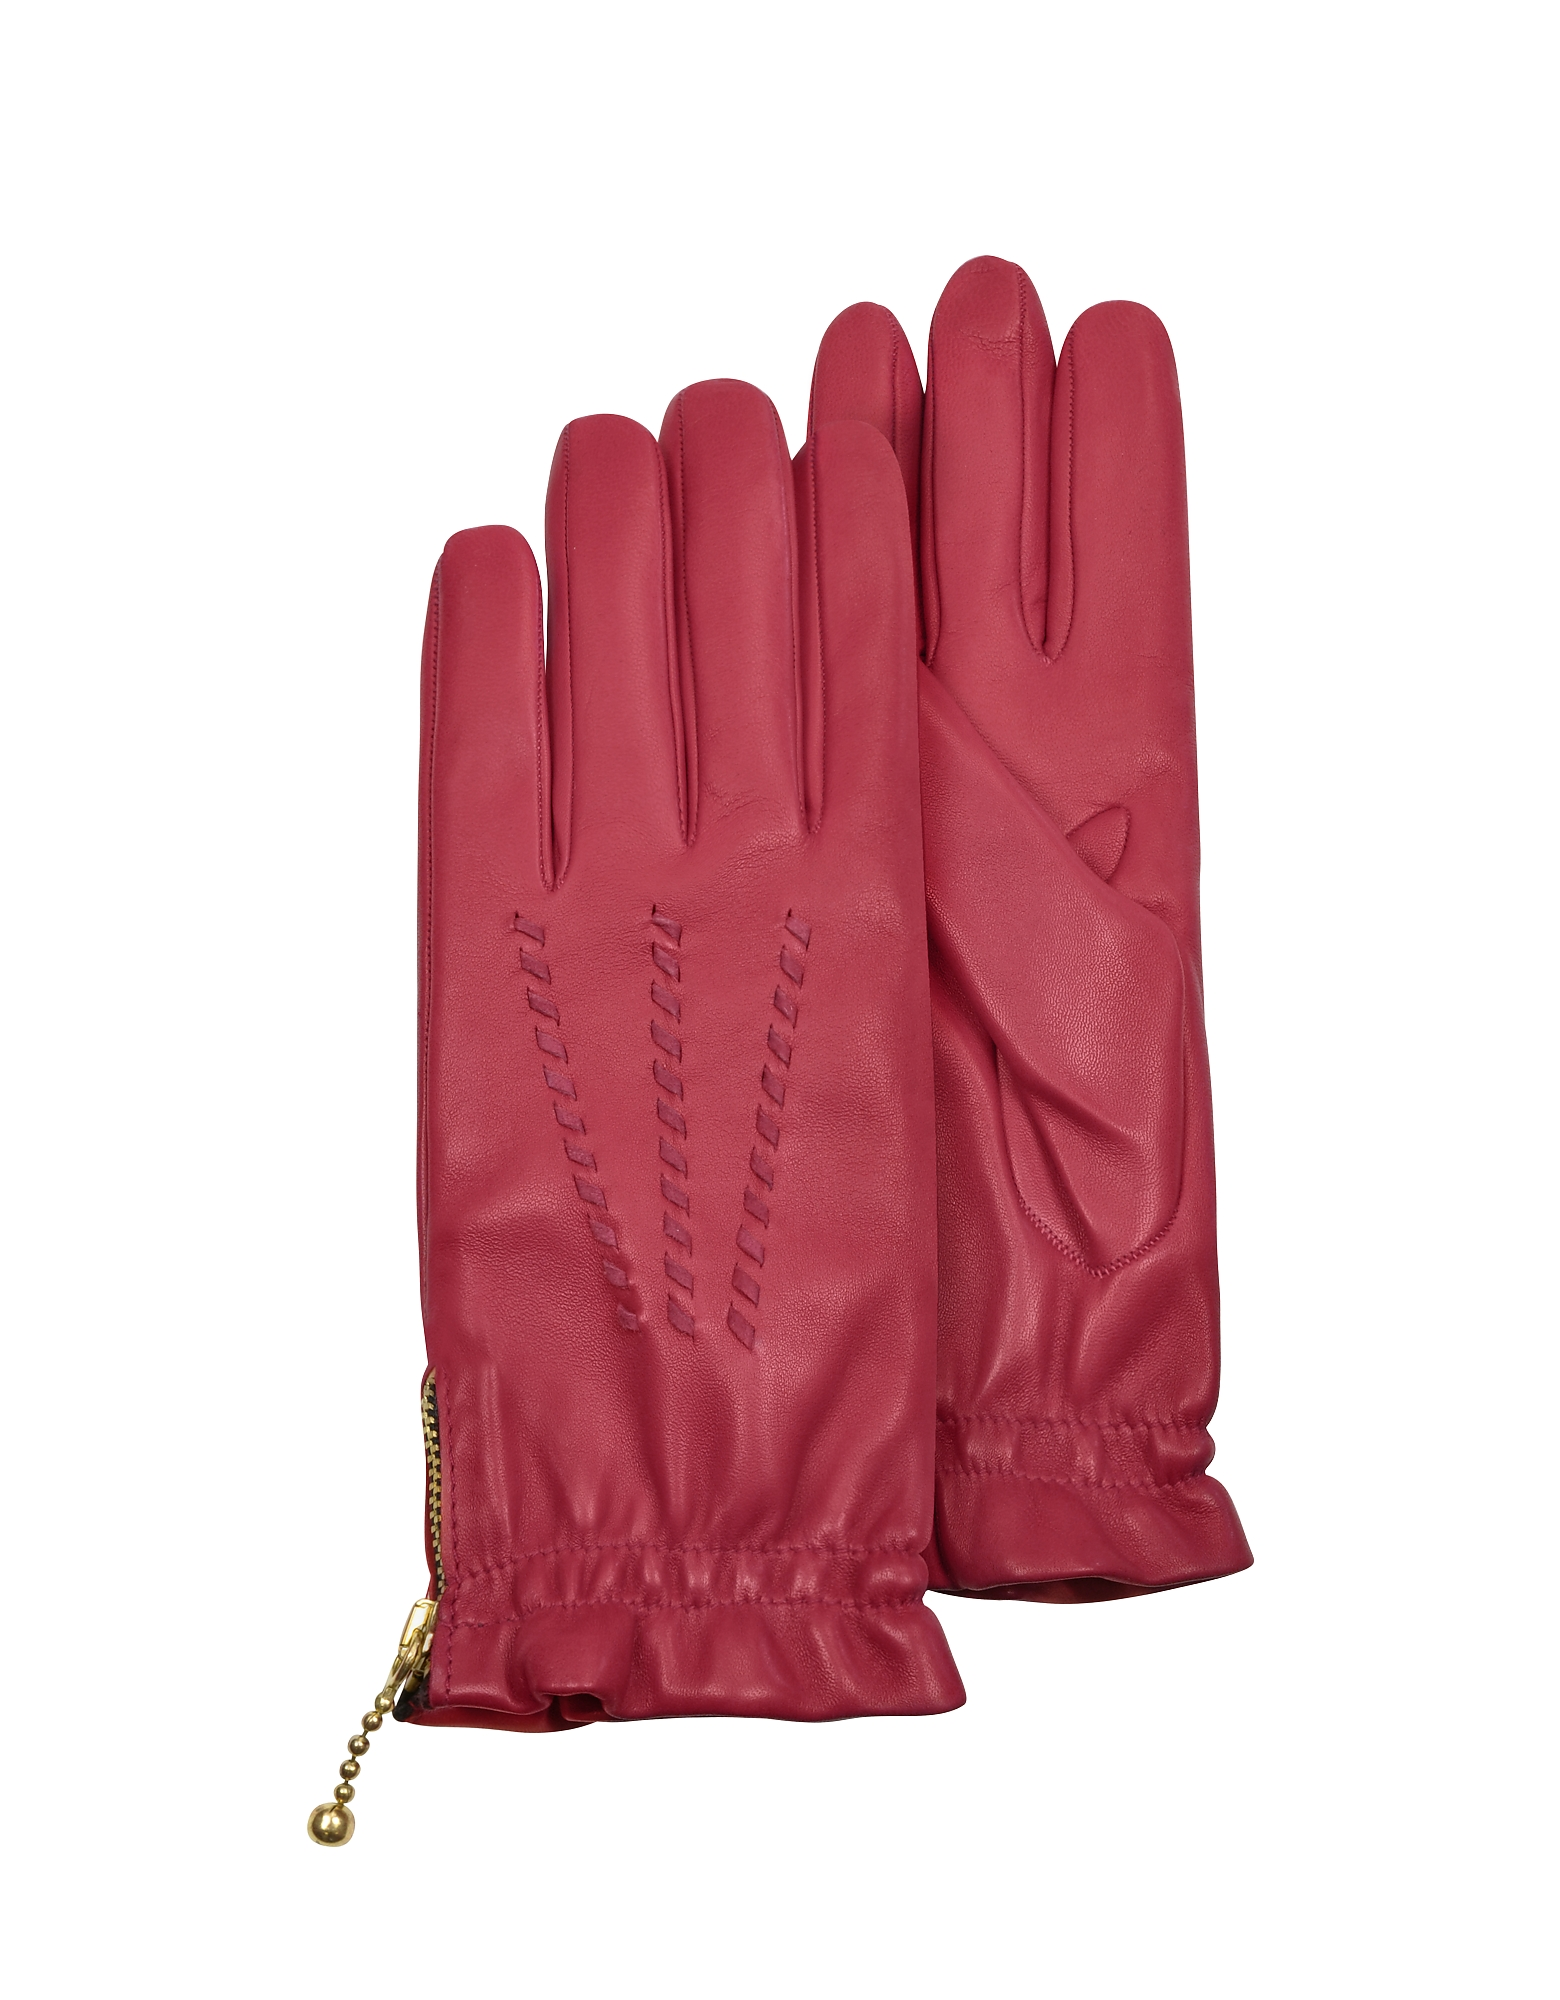 Forzieri Designer Women's Gloves, Women's Embroidered Red Calf Leather Gloves